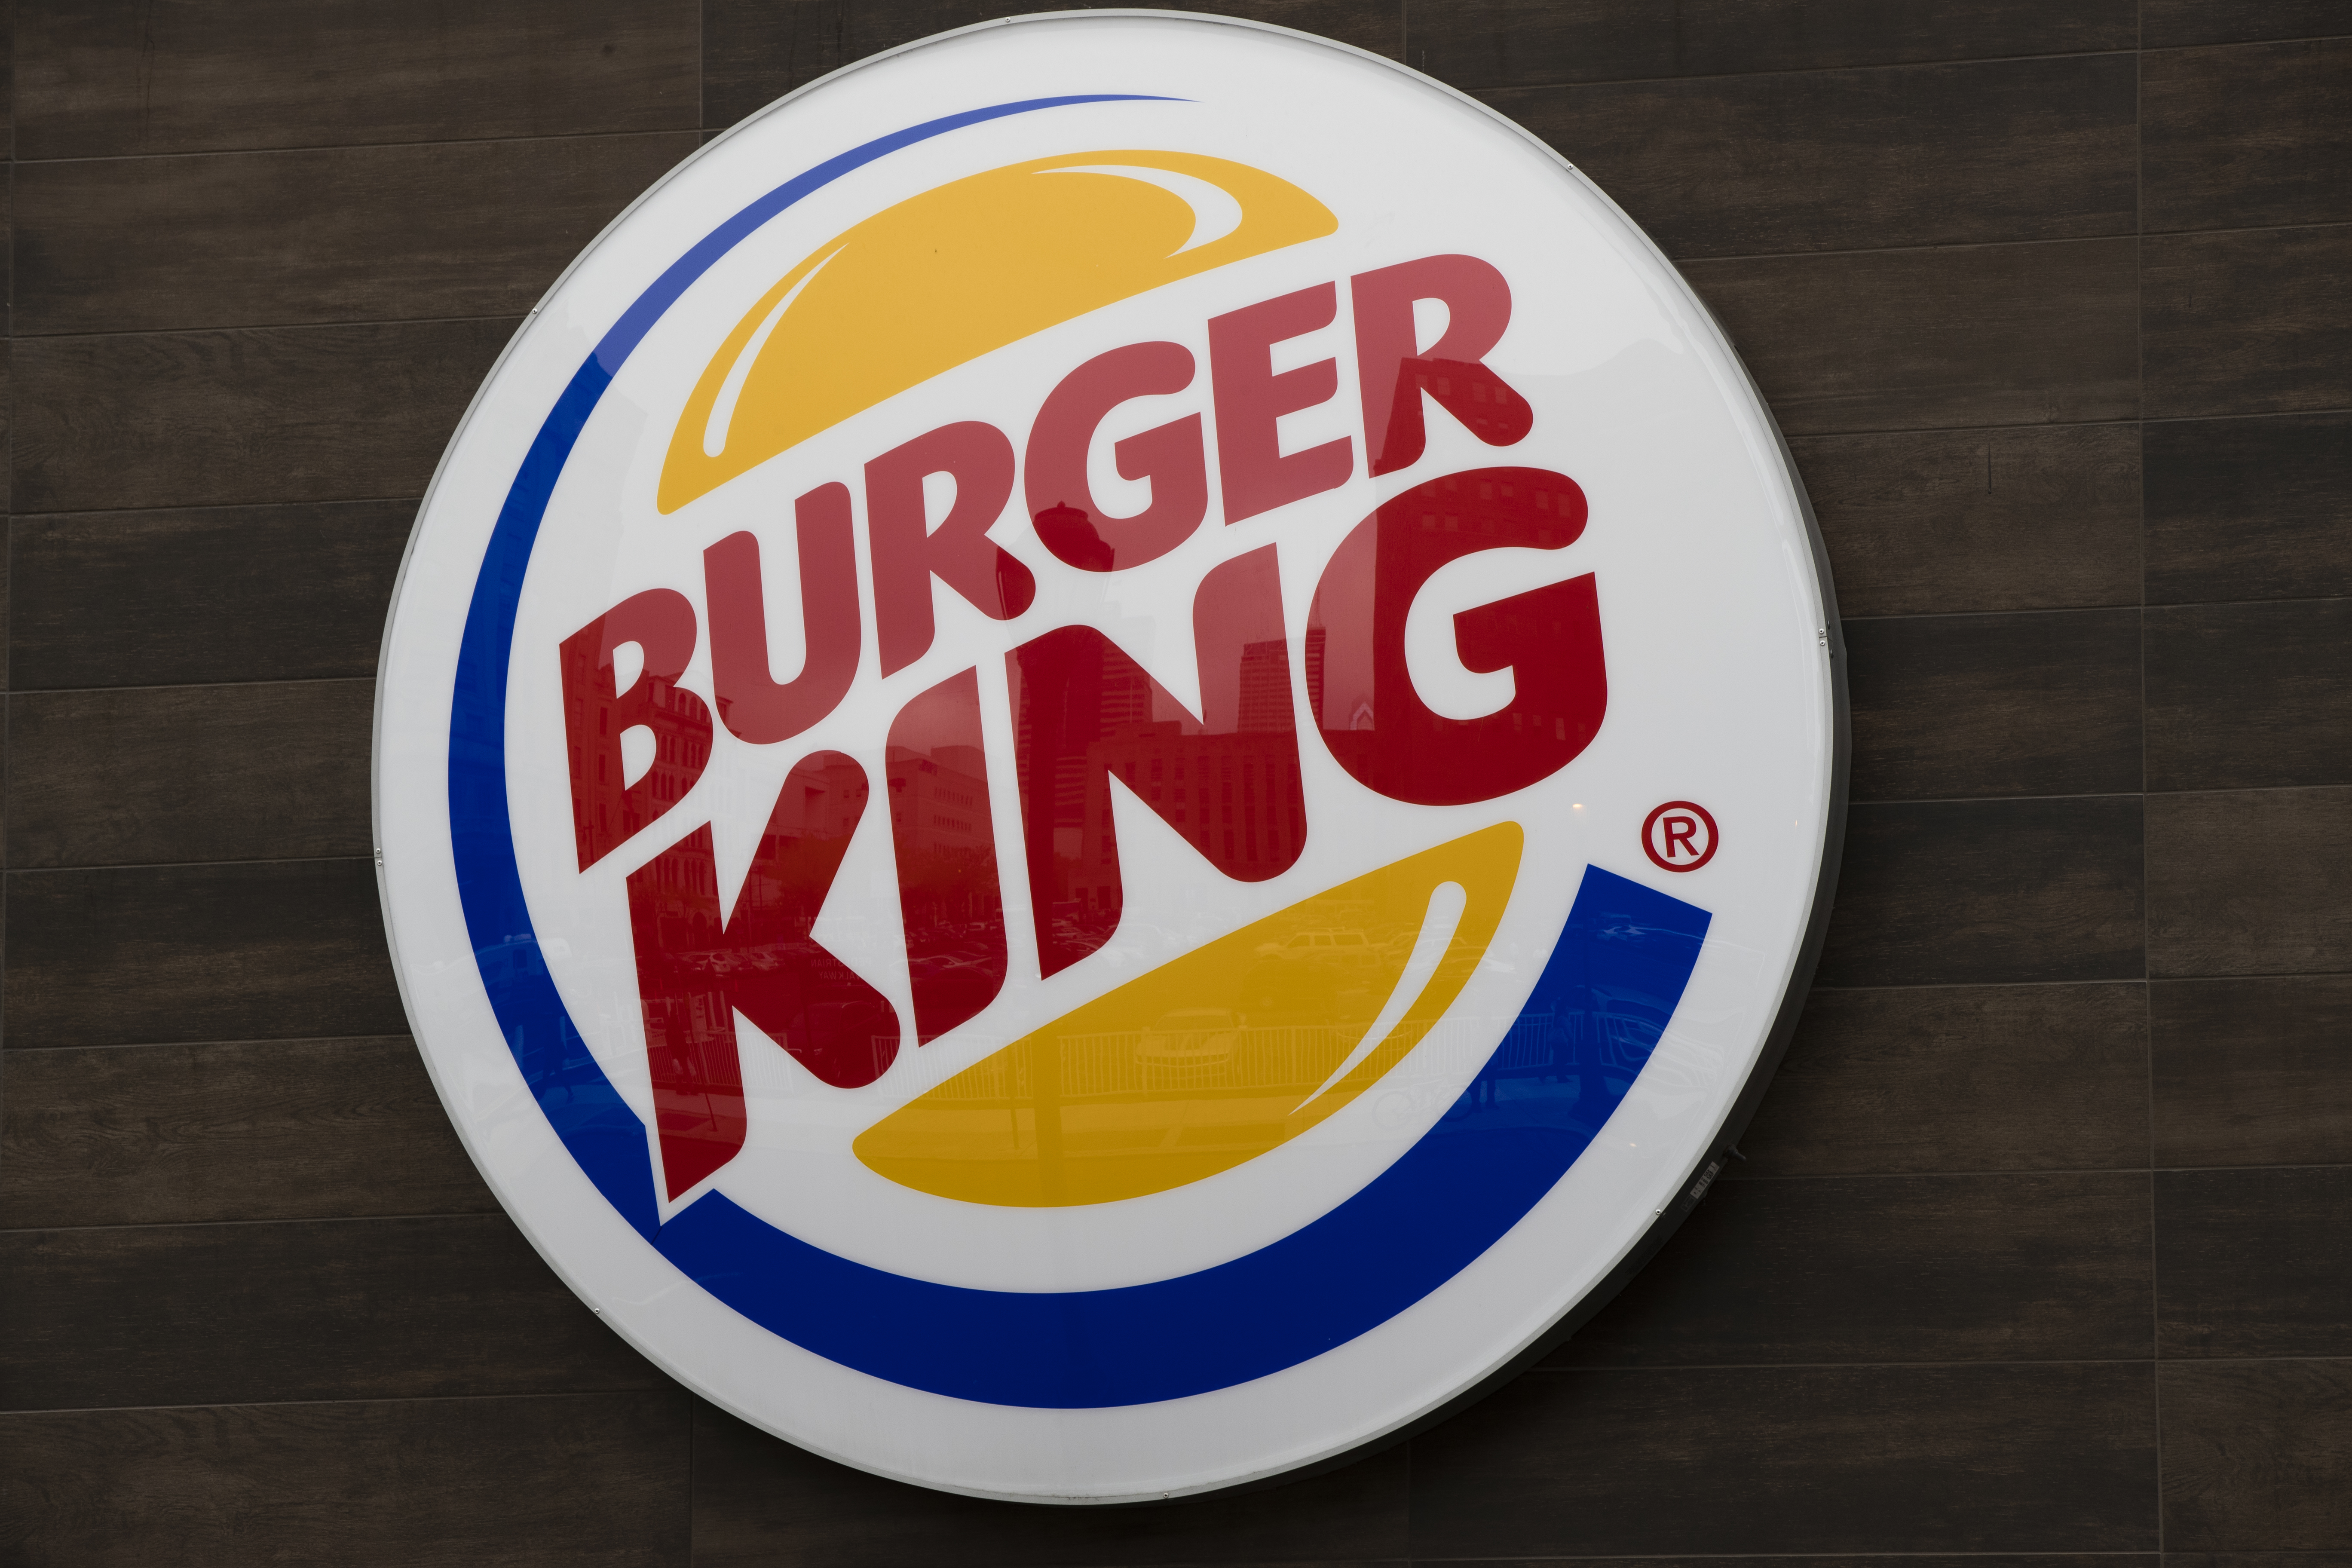 Burger King franchisee will pay $250,000 for 843 child labor